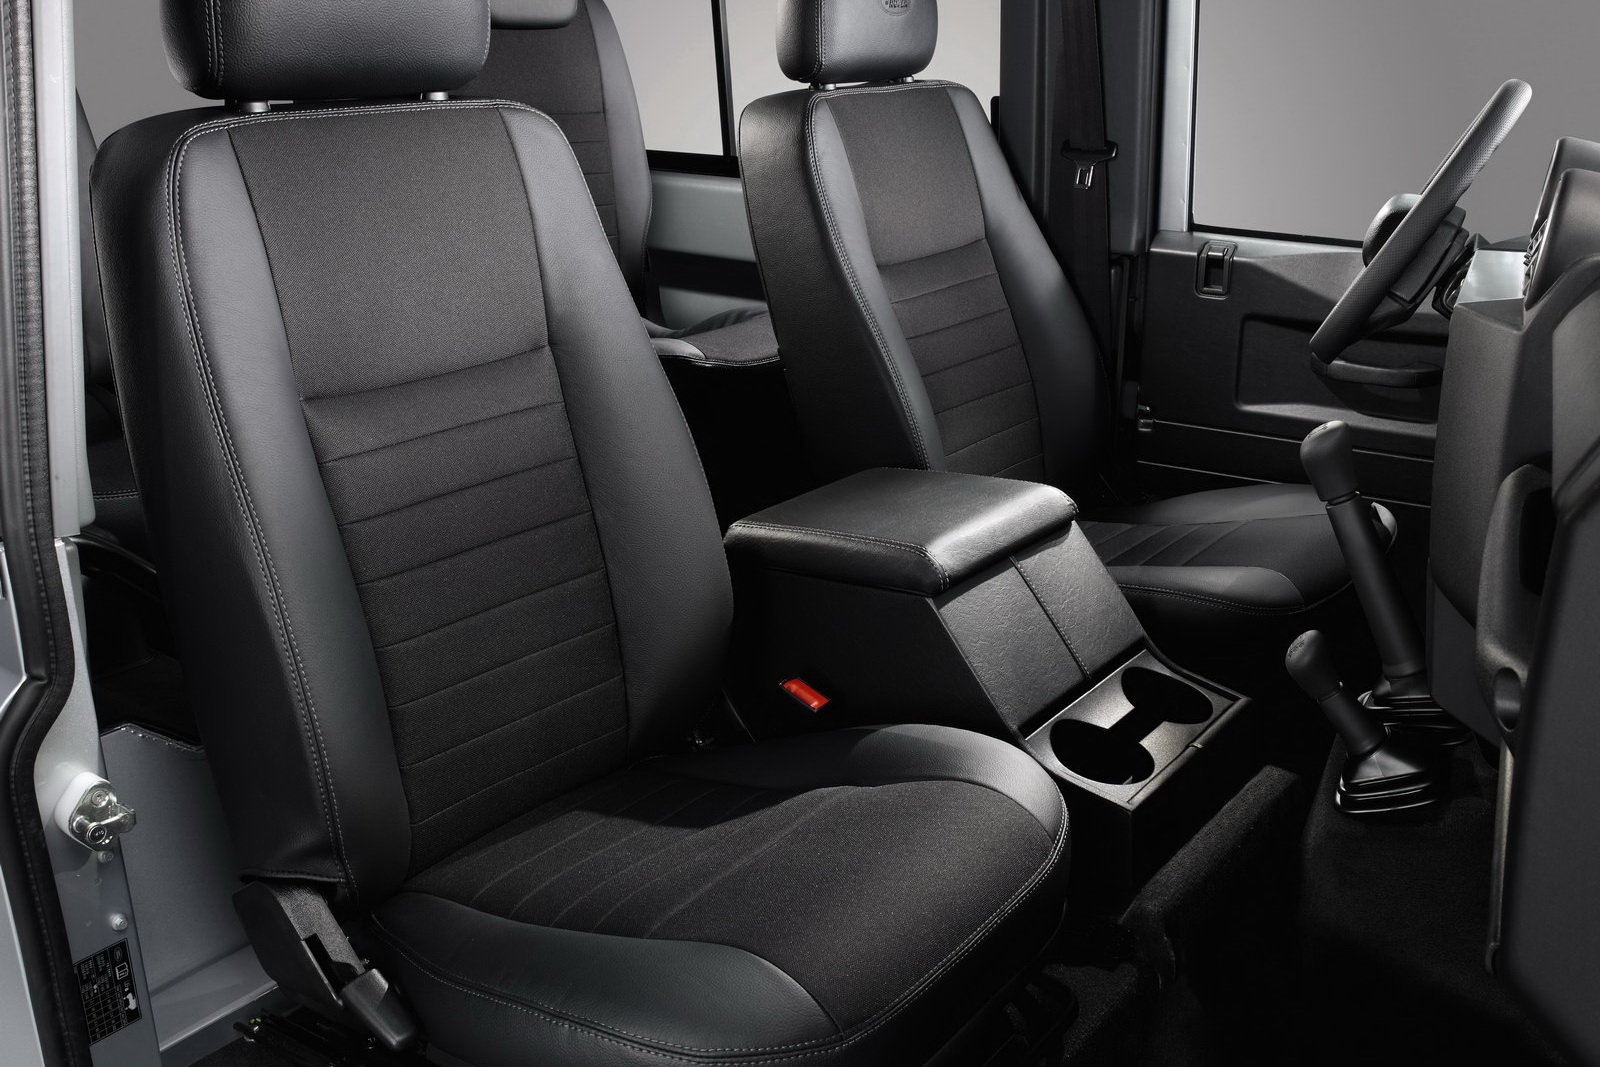 2011 Defender X Tech 12 Land Rover Releases the Limited Edition 2011 Defender X Tech